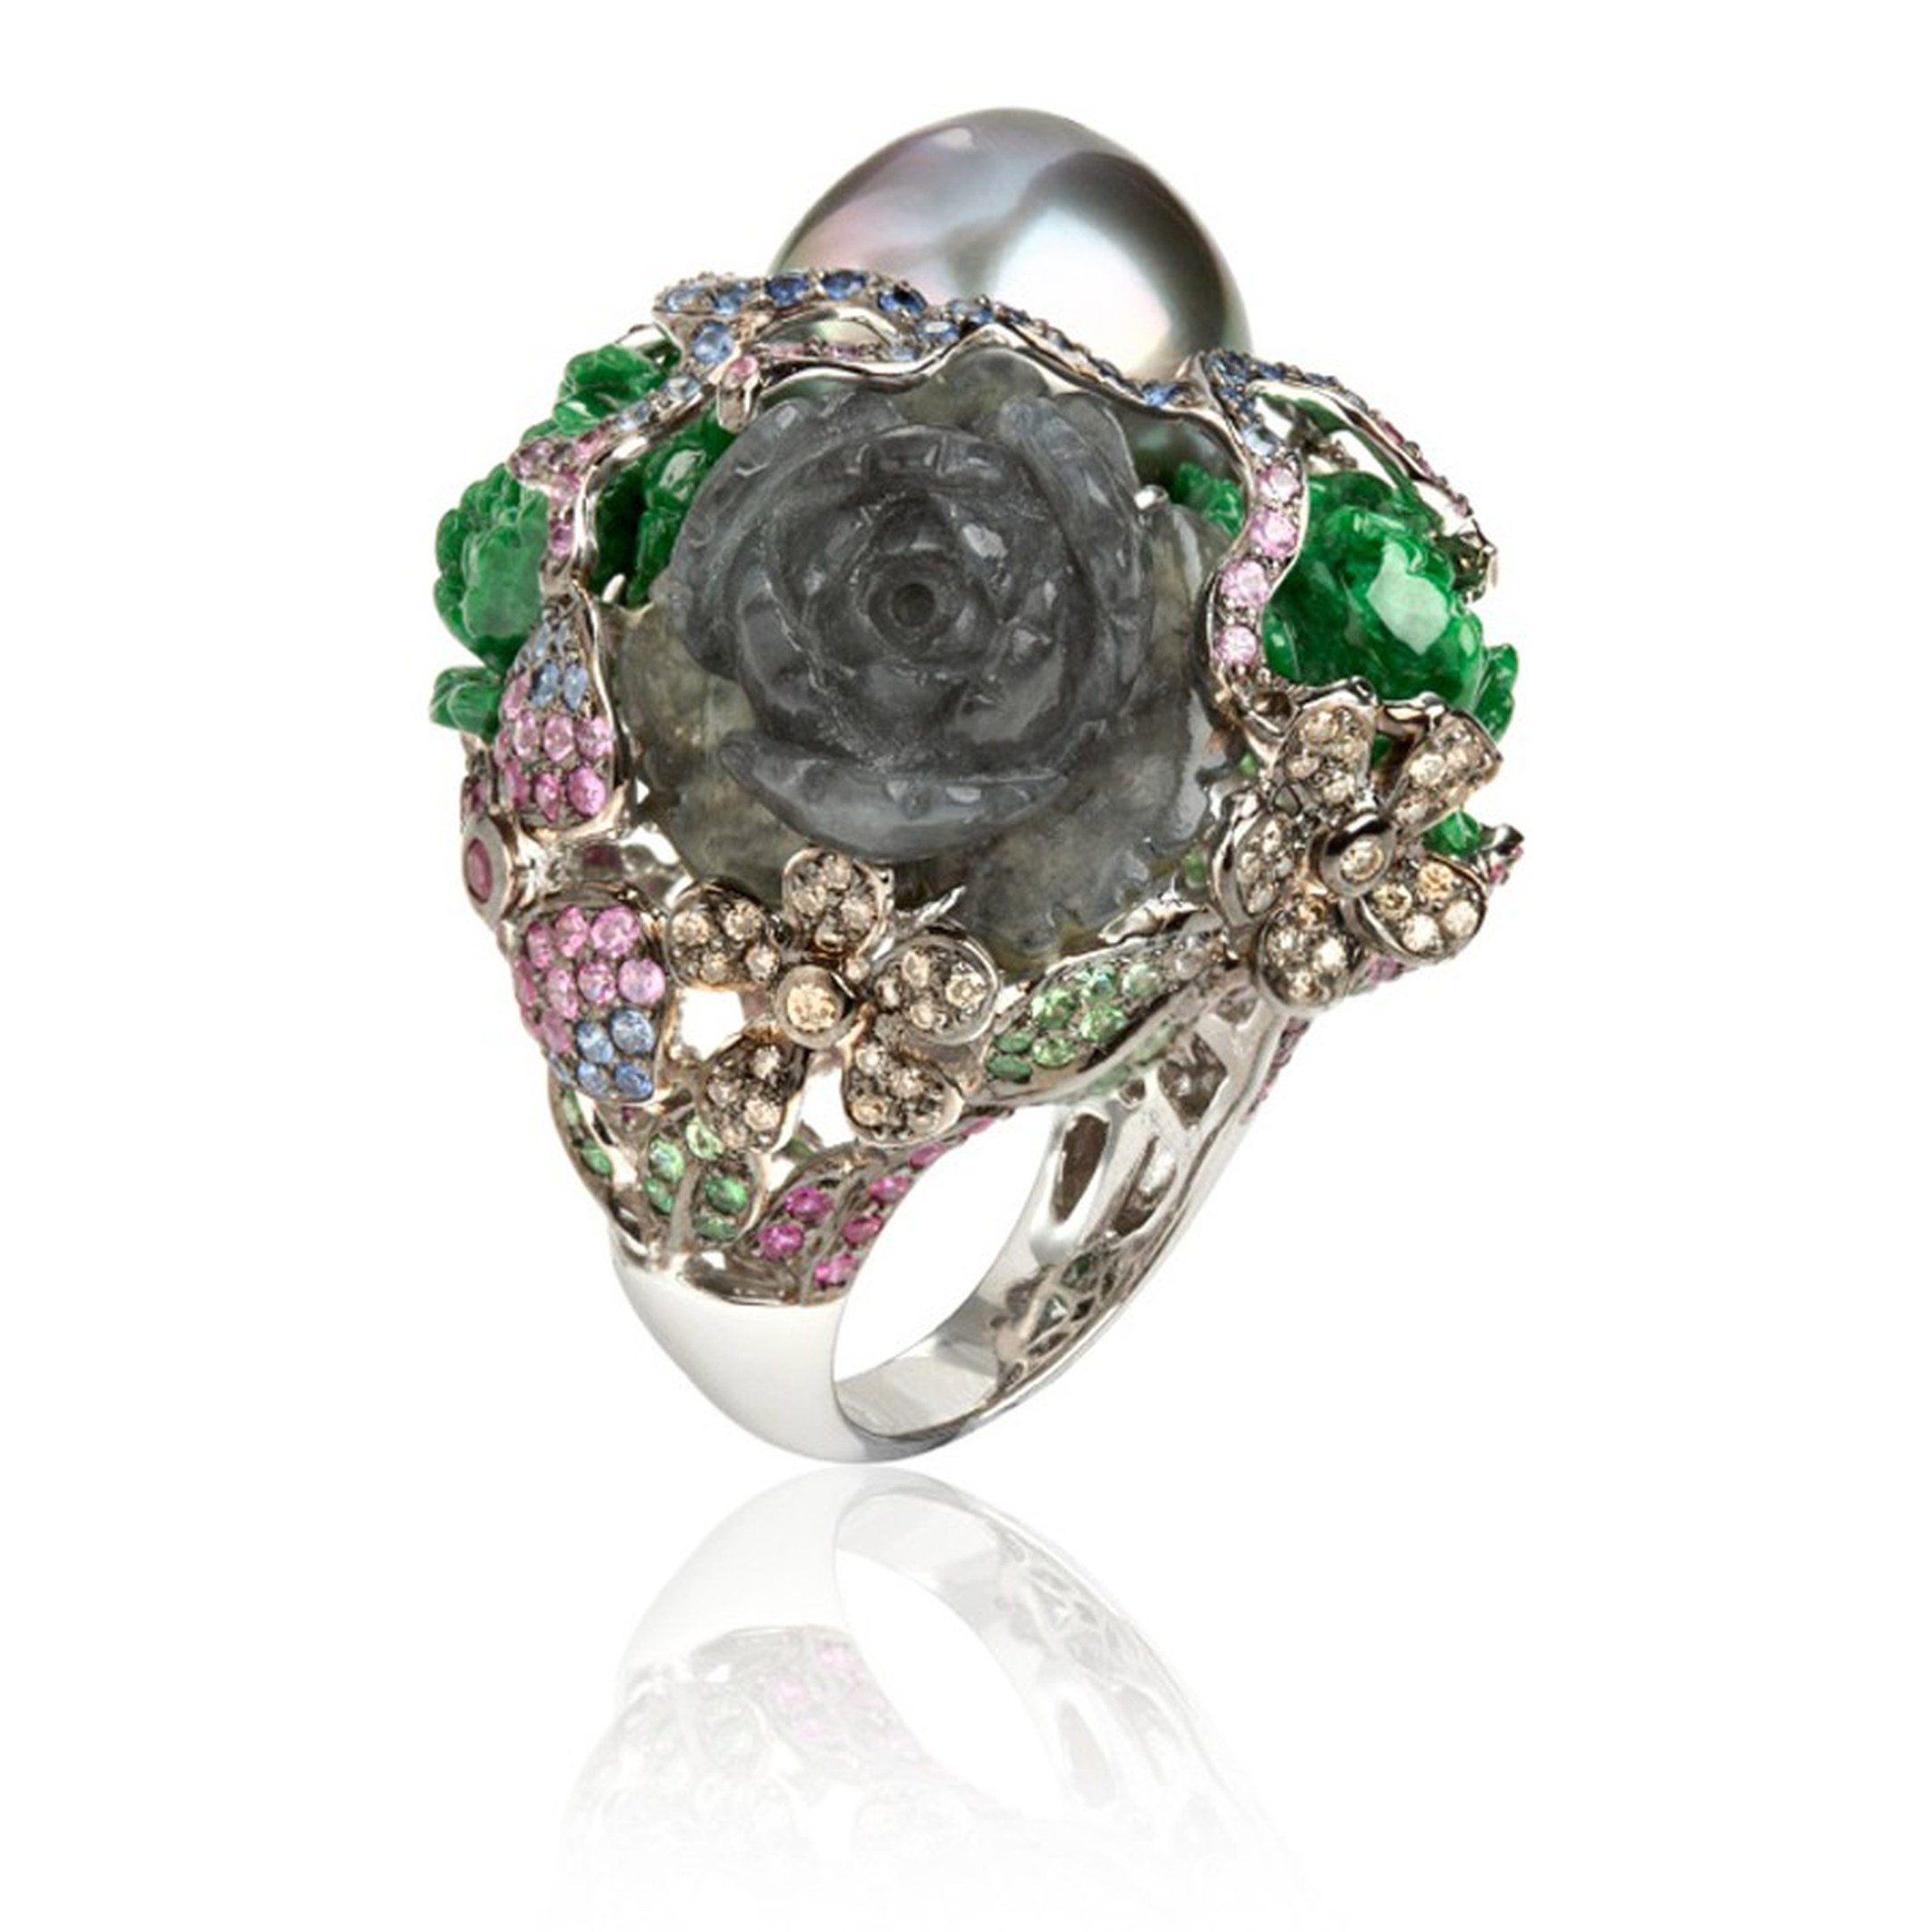 Wendy-Yue-Fantasie-18ct-white-gold,-pearl,--diamond,-sapphires,-garnet,jade-and-tourmaline-Perilous-Pearl-ring-By-Wendy--Yue-for-Annoushka.jpg